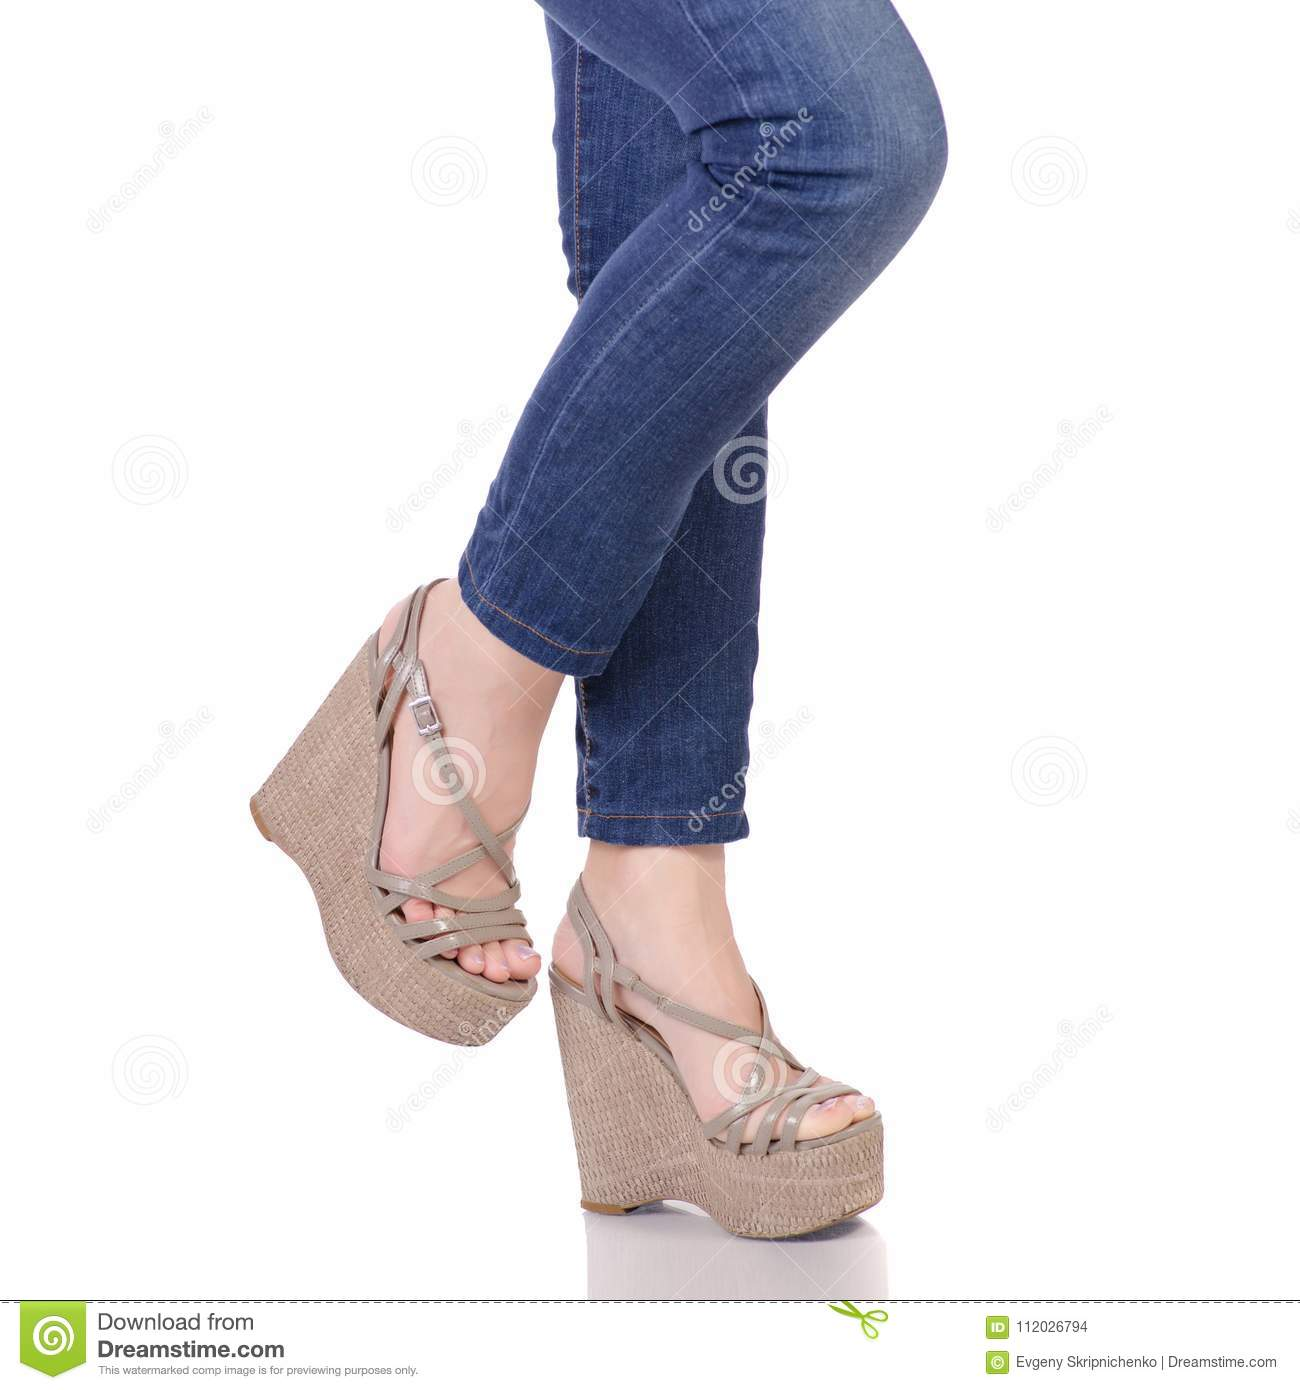 473dacafc Female legs in jeans and gray sandals on a wedge buy shop fashion beauty on  a white background isolation